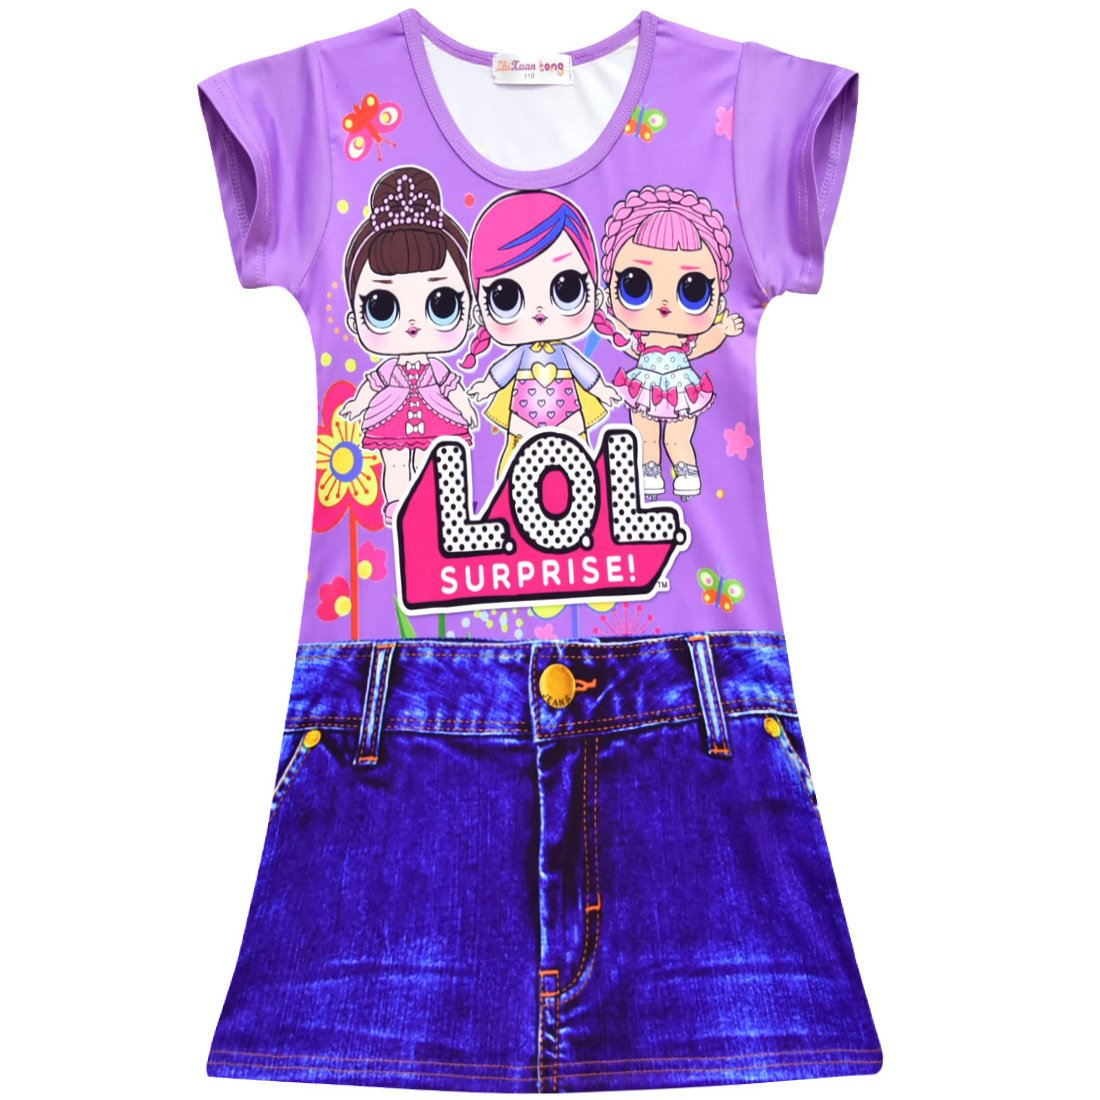 NekoBaby Girl's Nightgown Printed Cute Night Dresses for Halloween Birthday Party Costumes